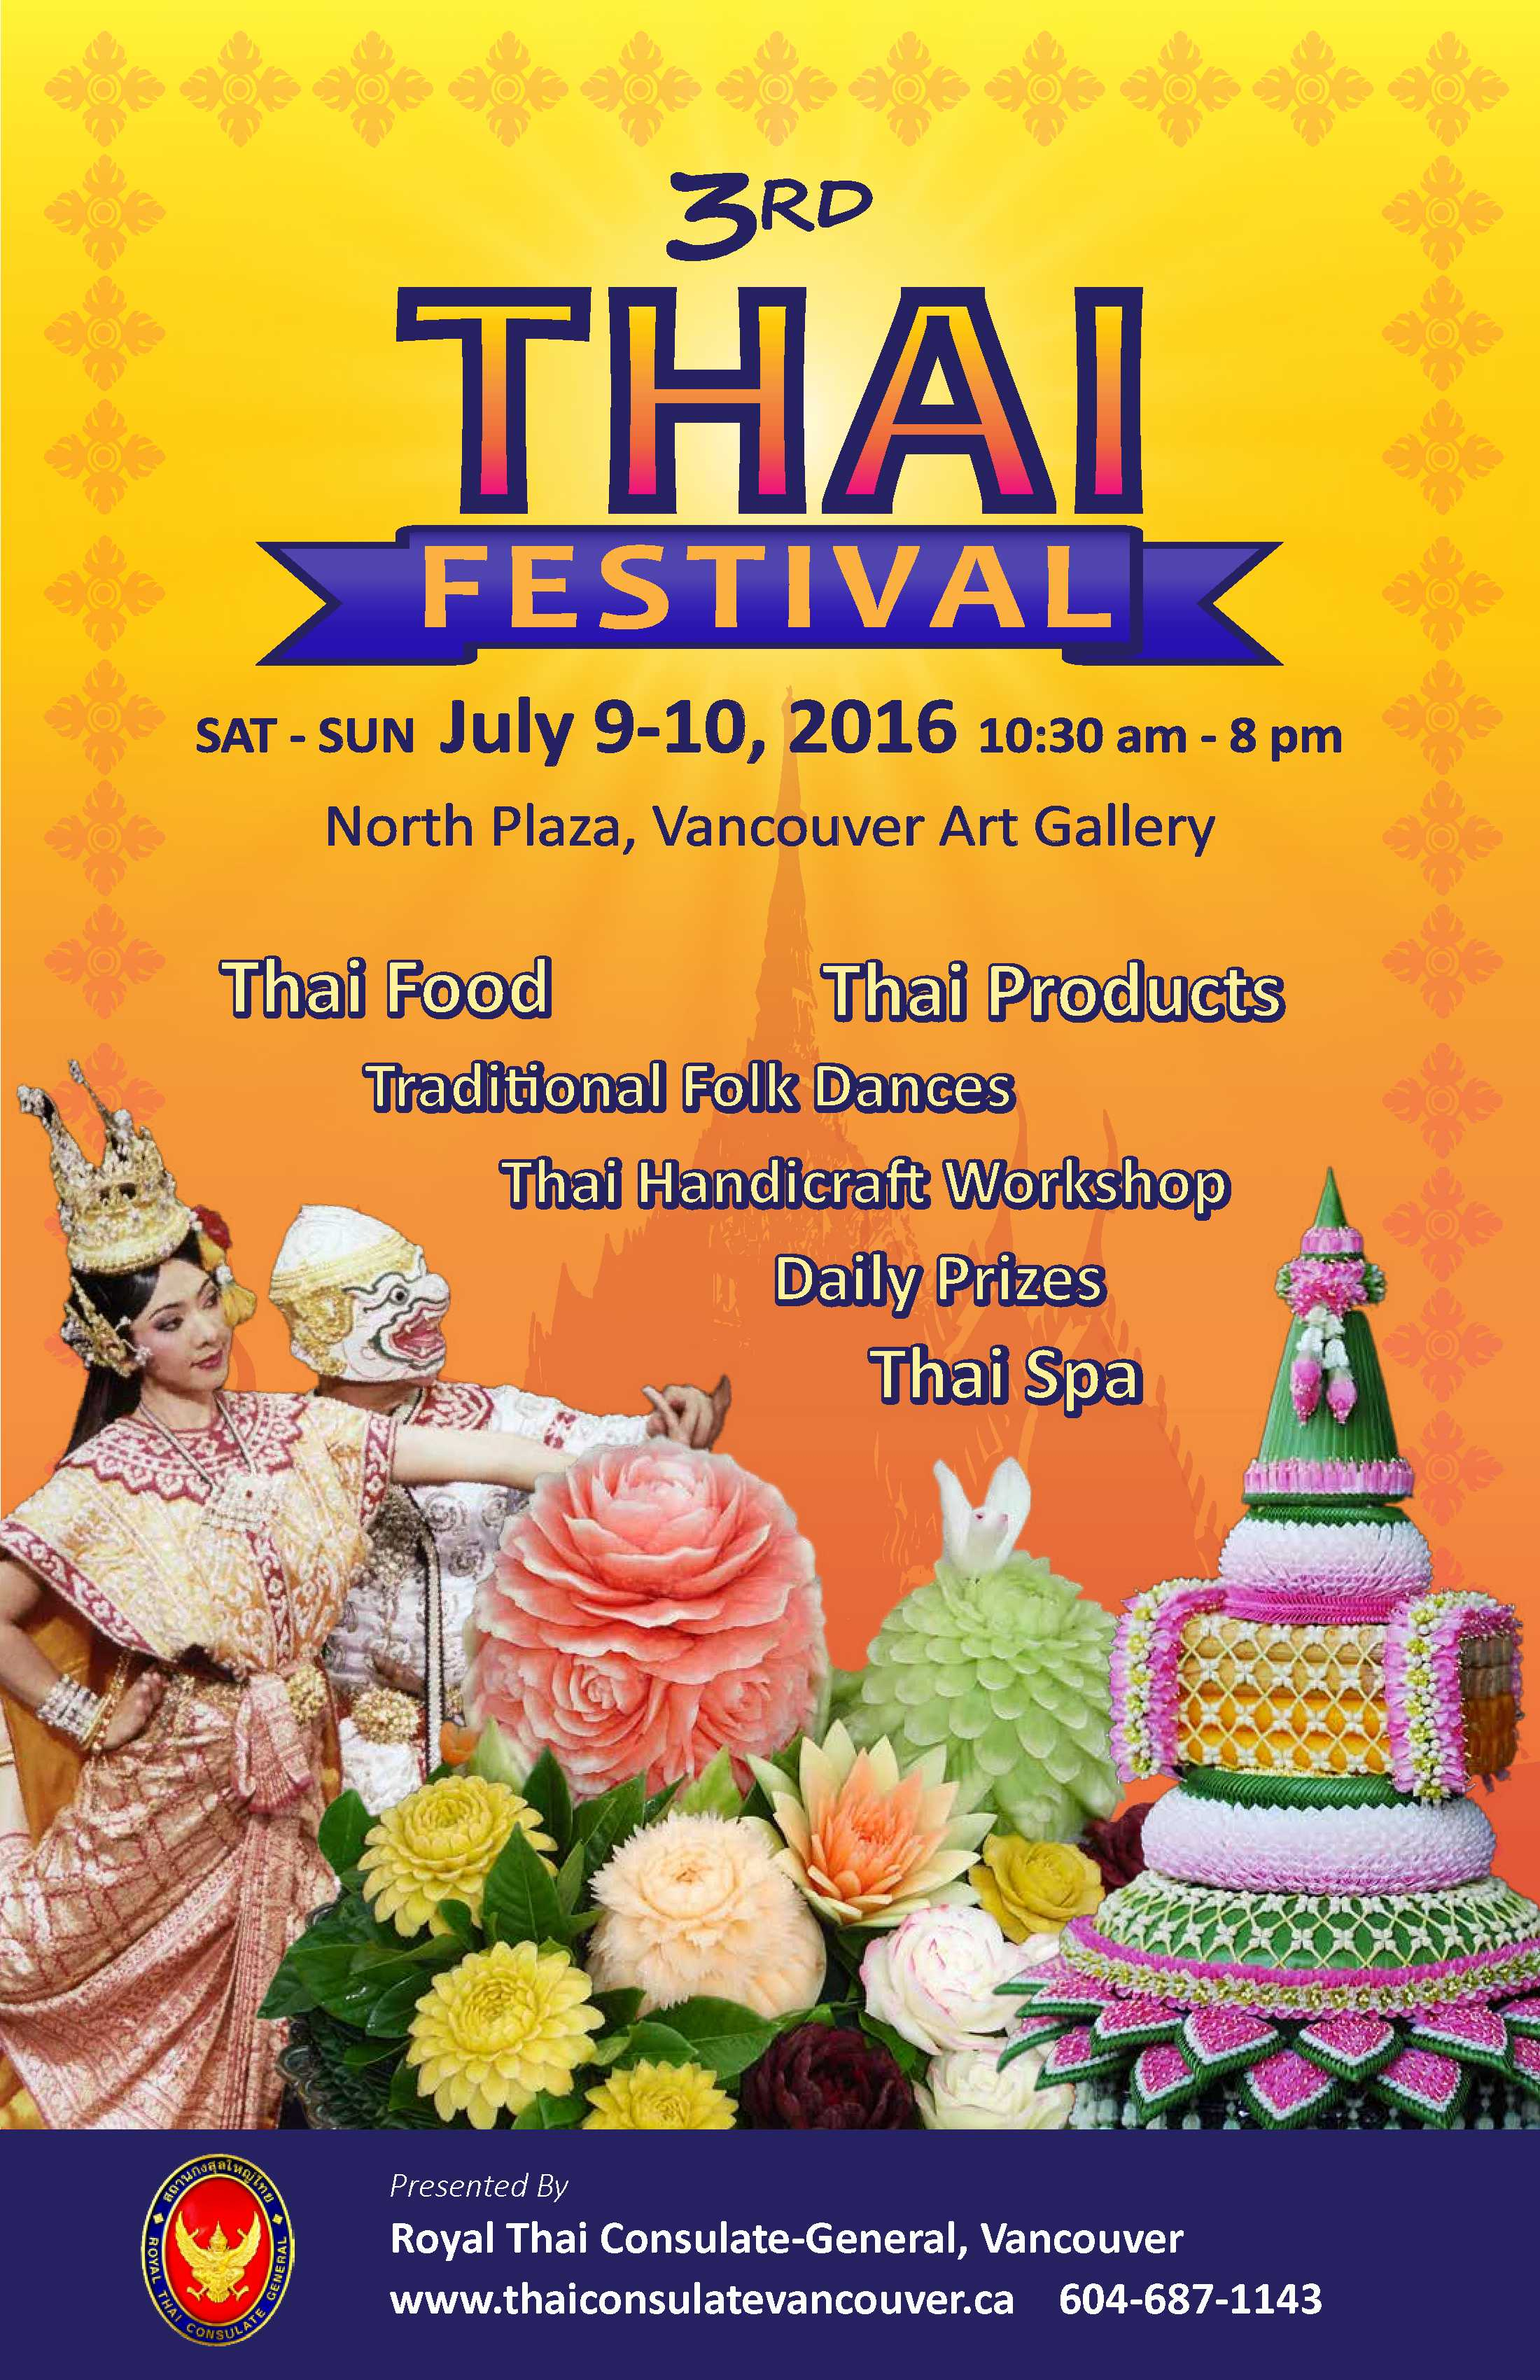 The 3rd Thai Festival in Vancouver, 9 – 10 July 2016, @ North Plaza, Vancouver Art Gallery